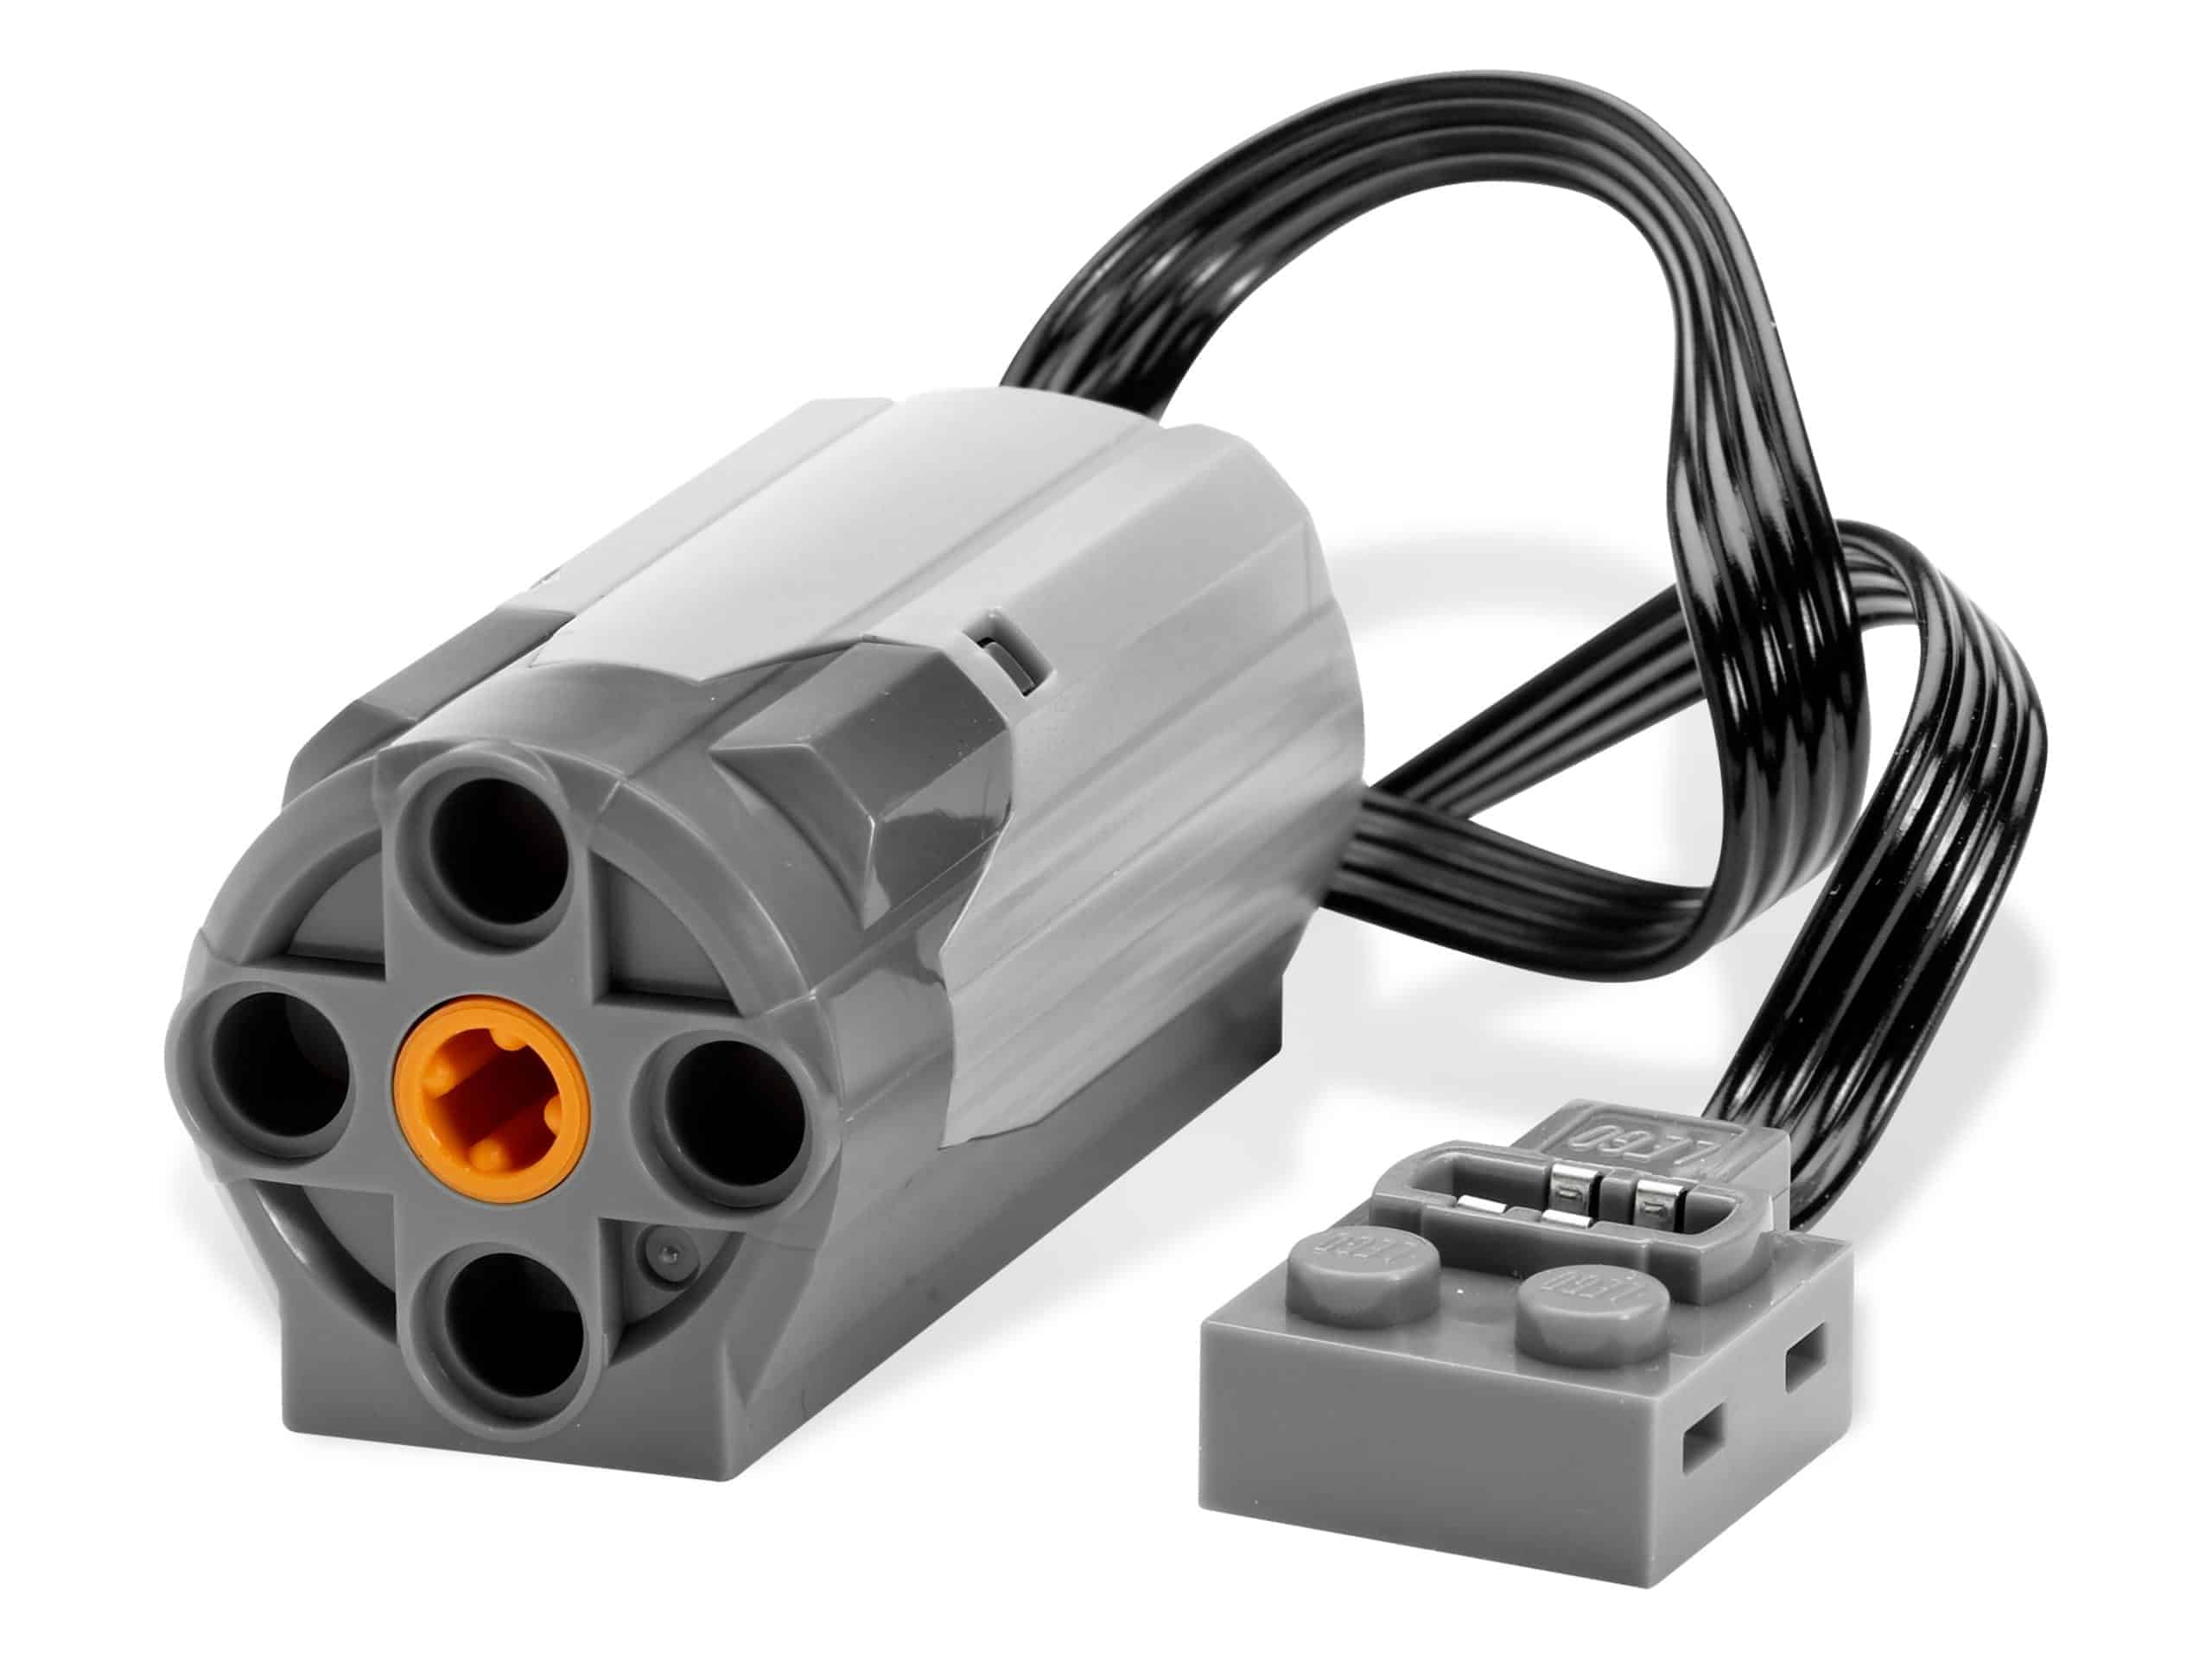 lego 8883 power functions m motor scaled